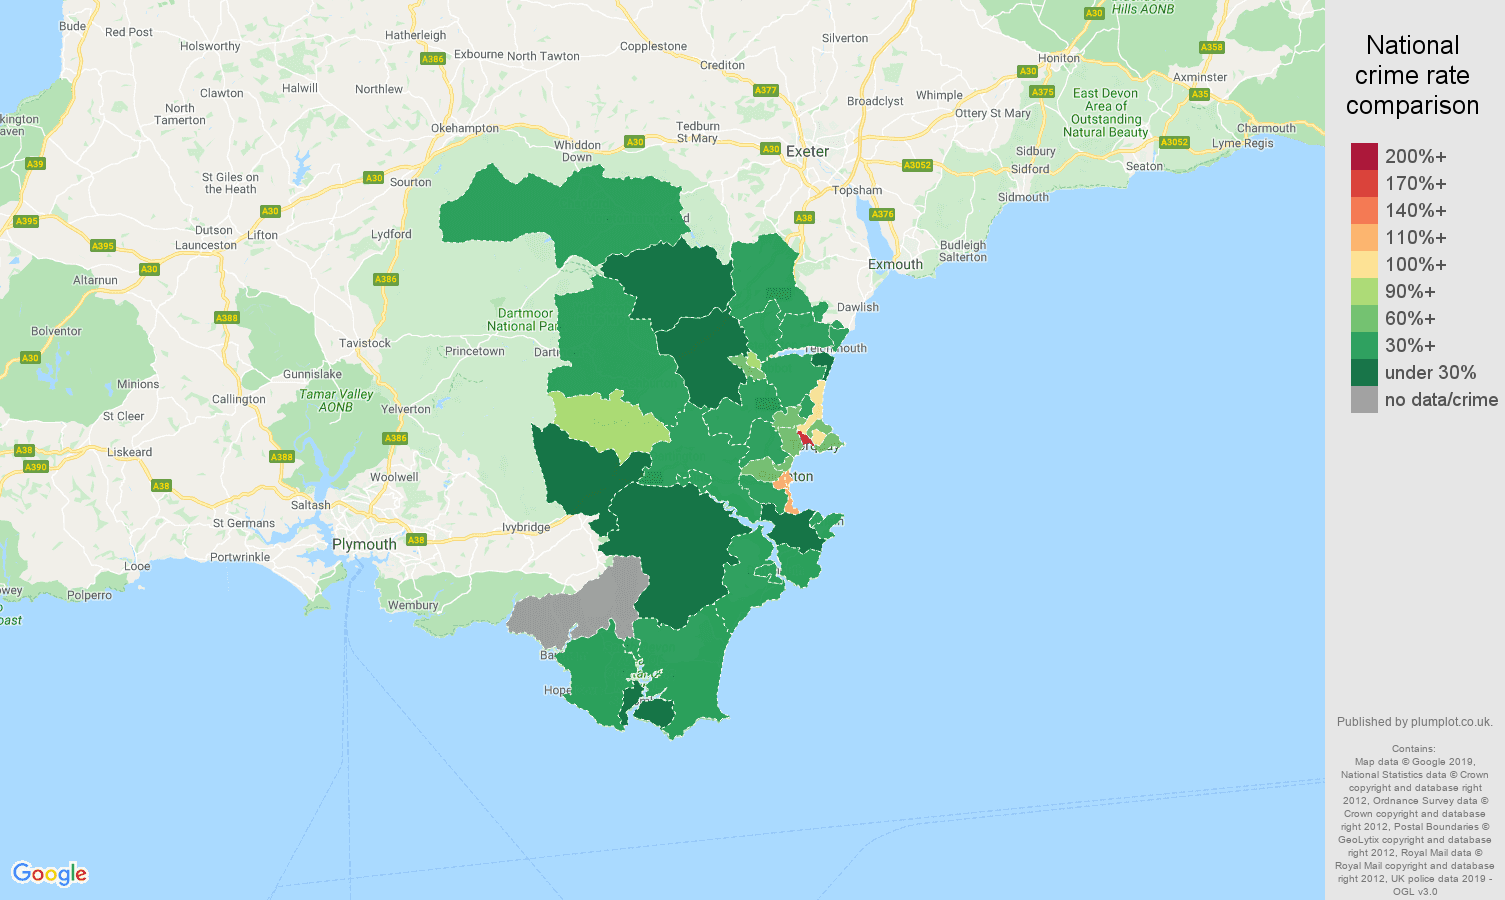 Torquay public order crime rate comparison map